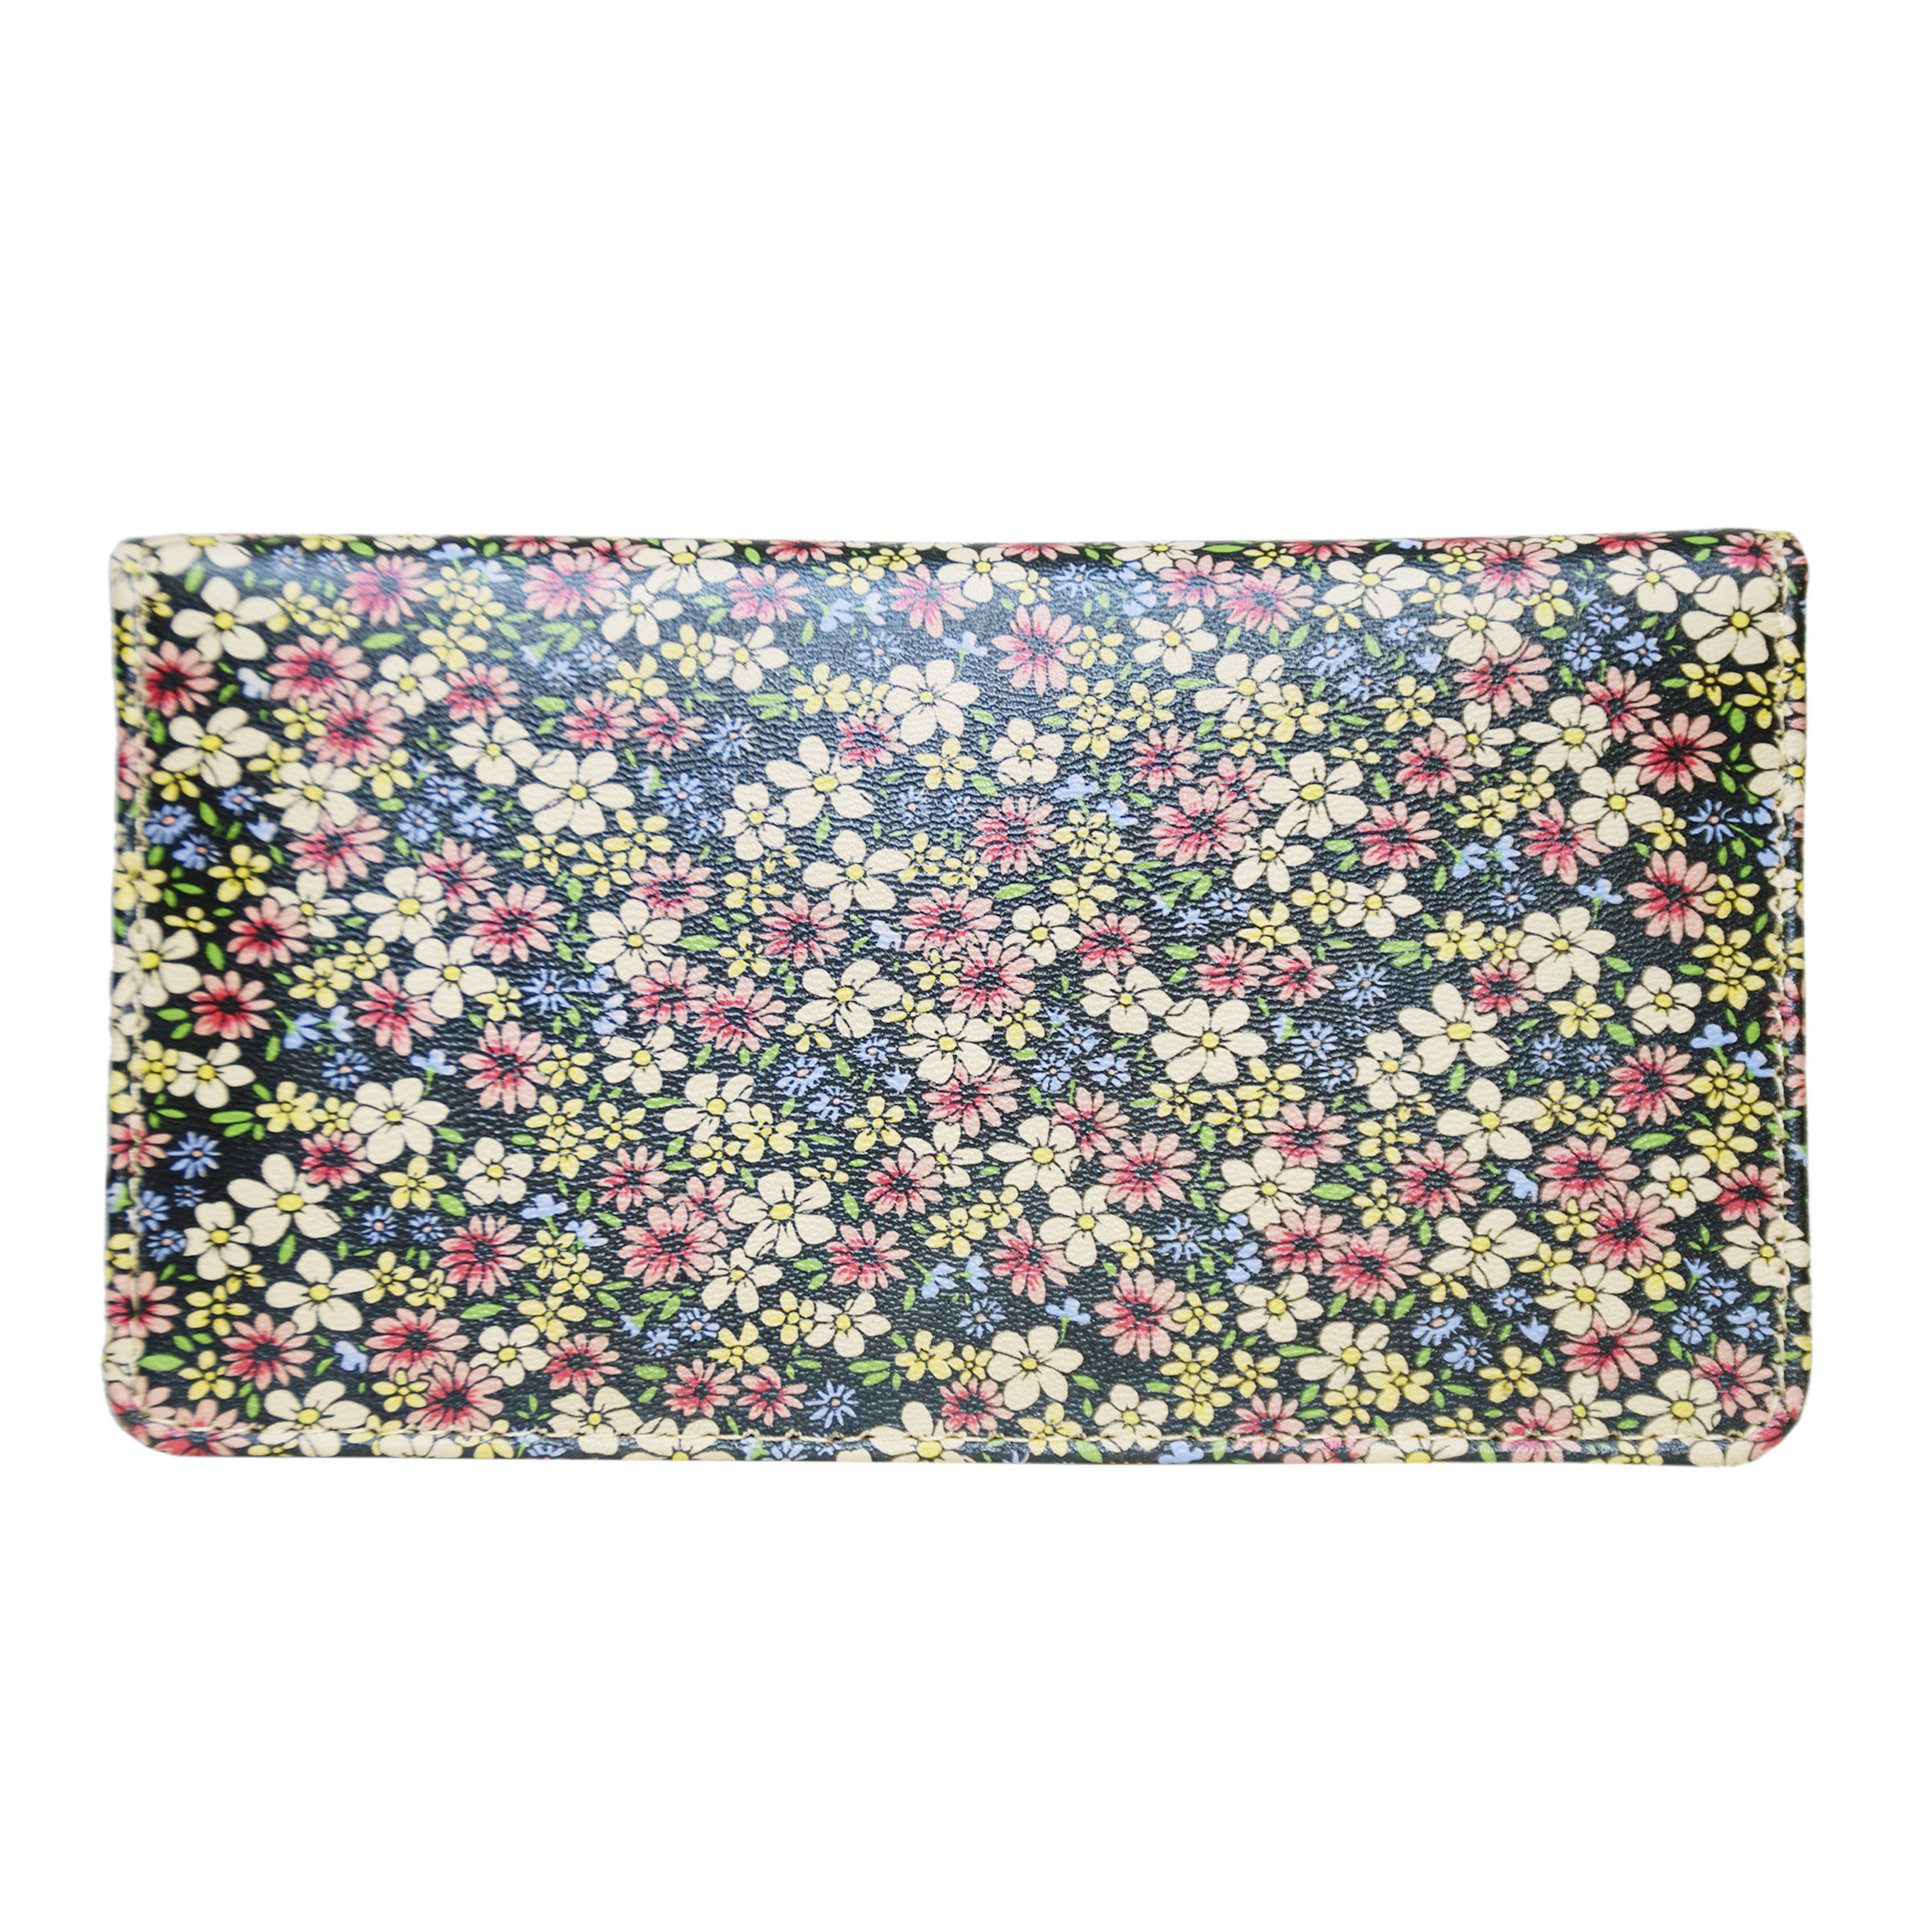 FLOWER DESIGN LADIES CLUTCH WTIH SEVERAL POCKETS